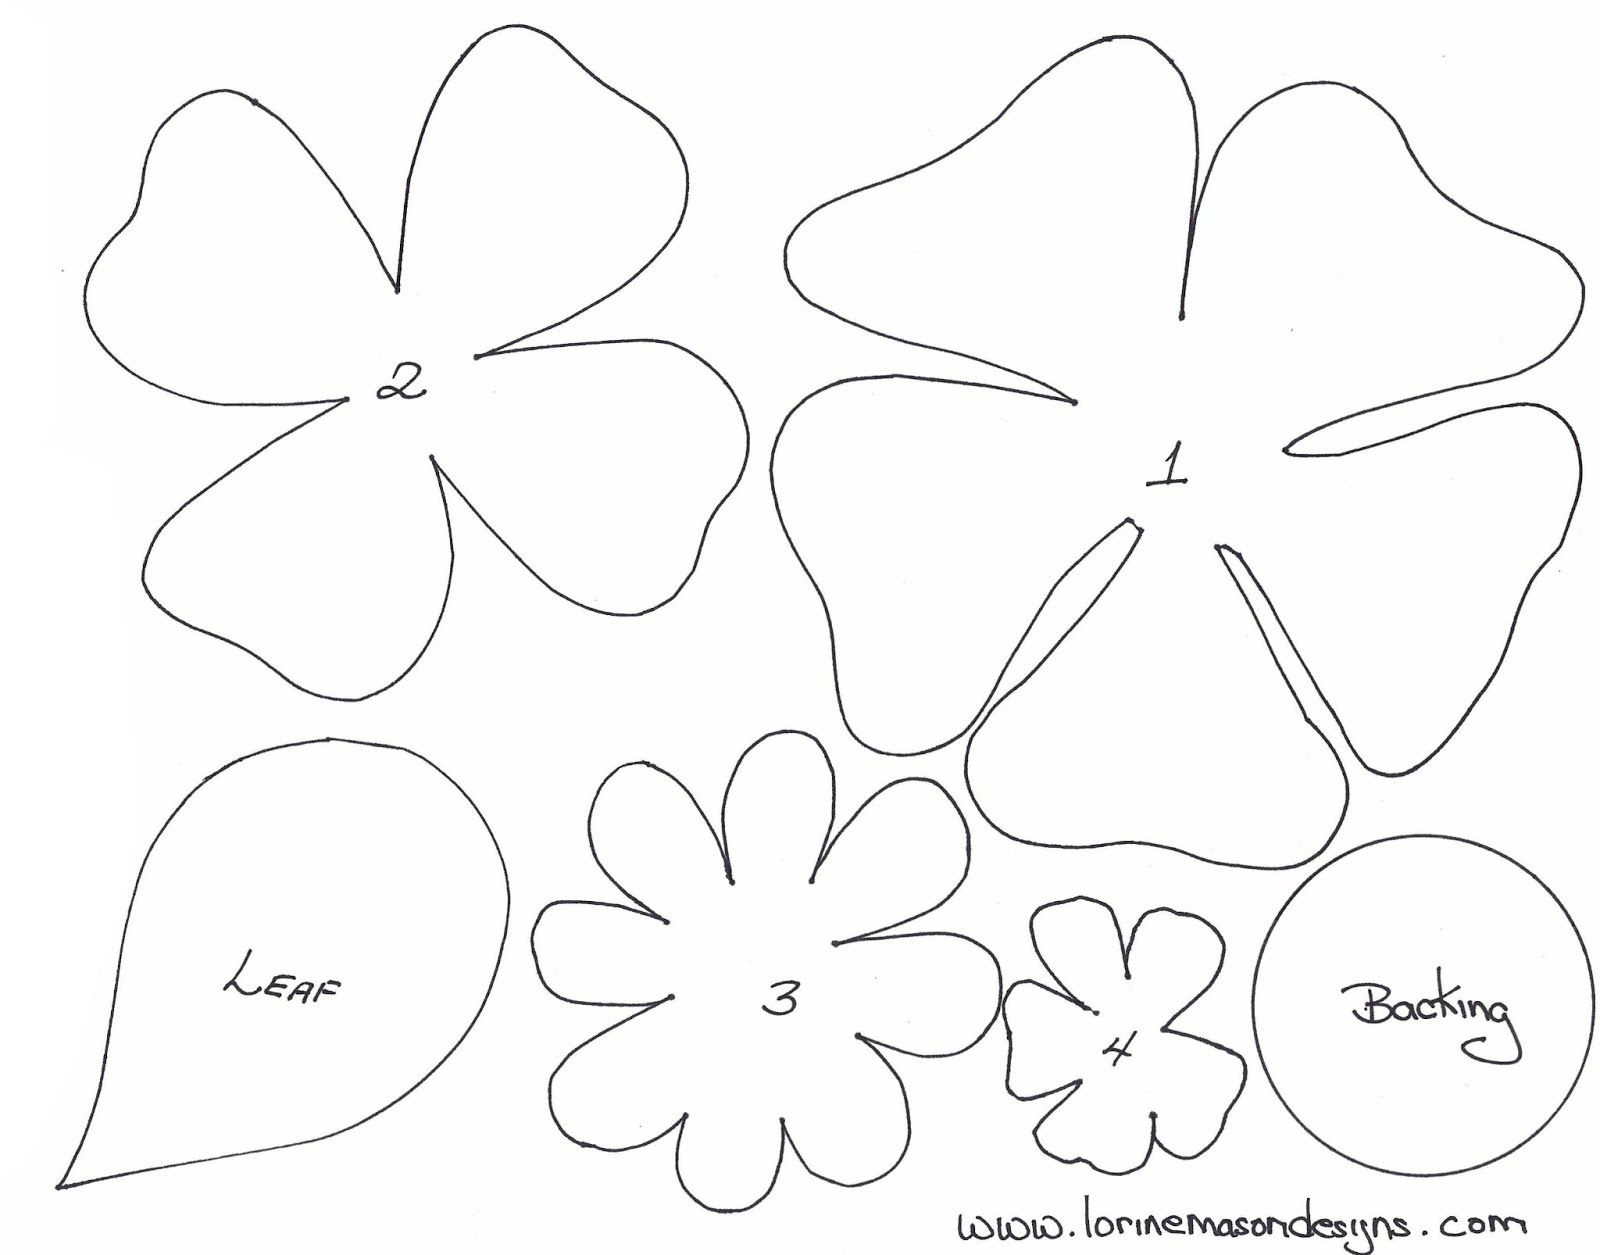 Free felt ornament patterns felt flower patterns http 424 x 425 19 kb jpeg print this felt flower brooch pattern http sewing jeuxipadfo Choice Image